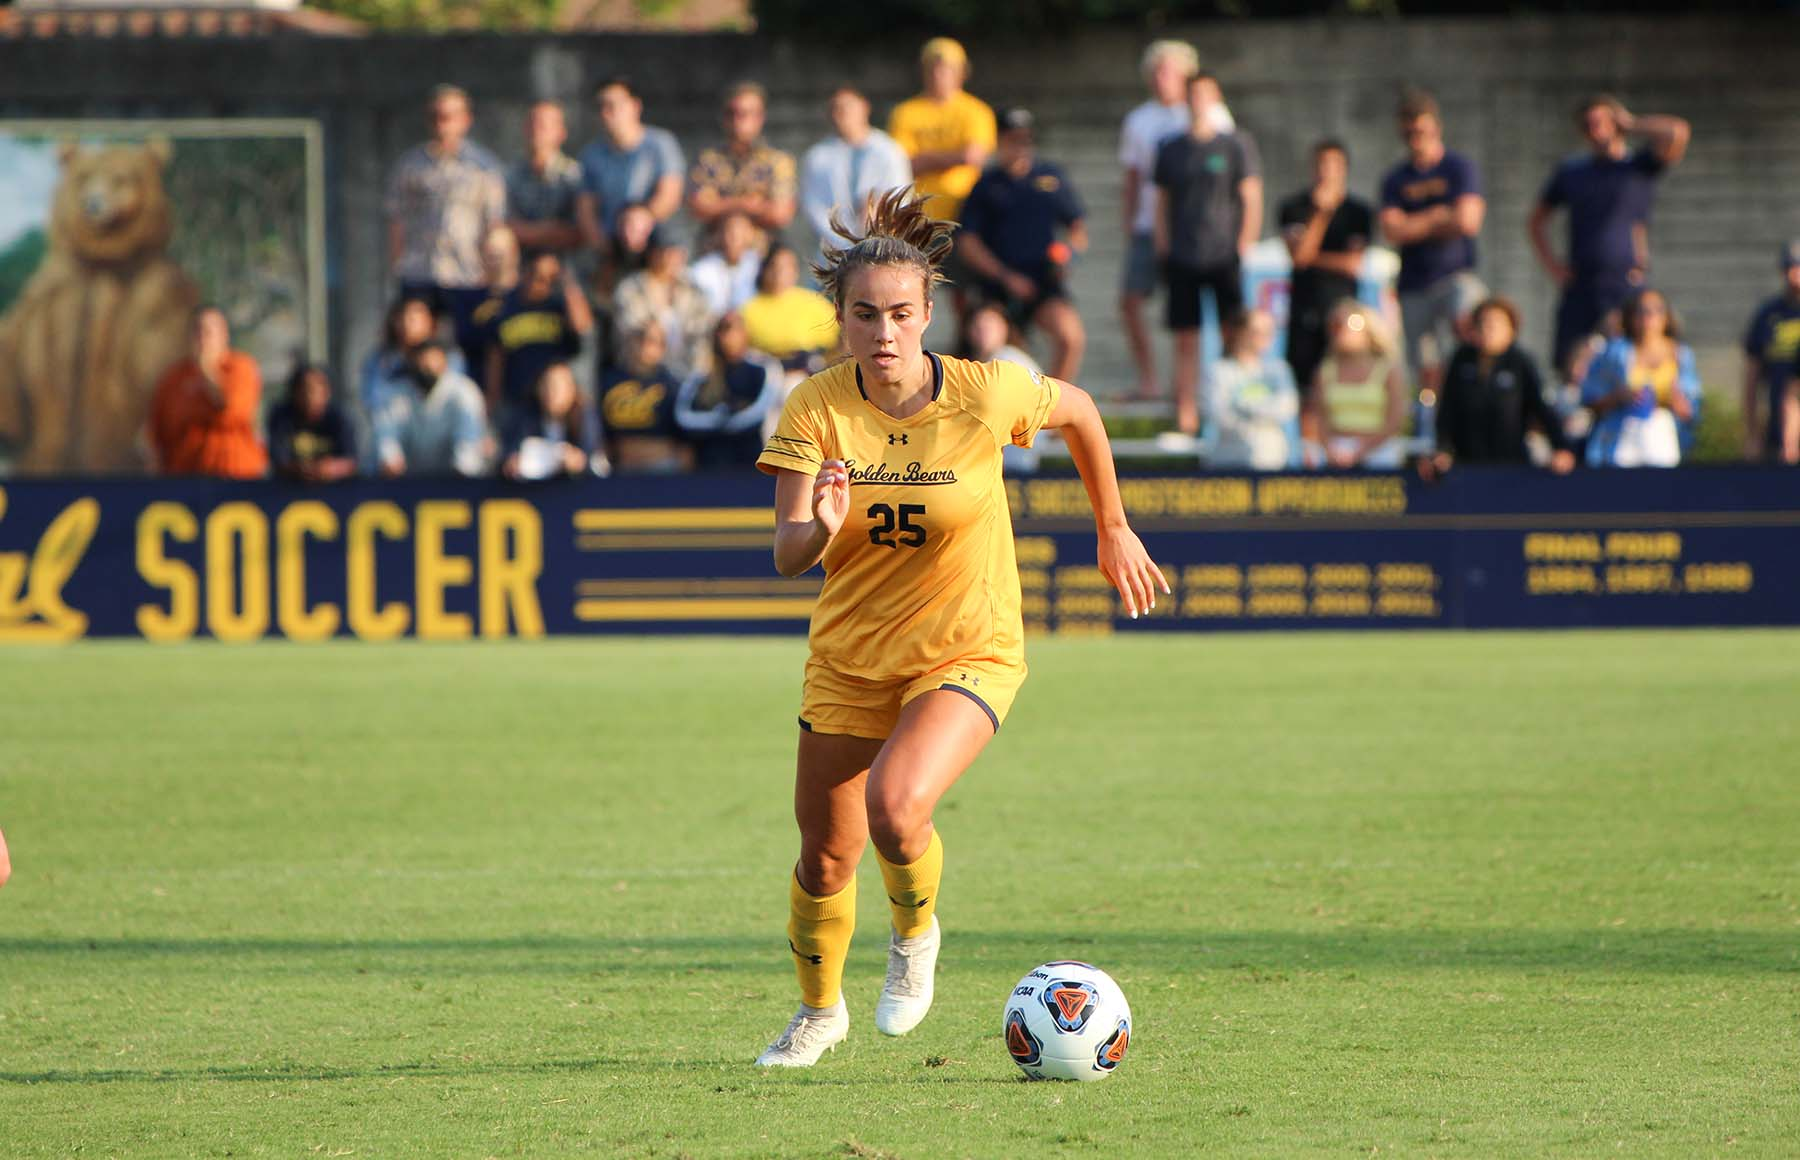 Photo of Mia Fontana from Cal Women's Soccer running for a ball